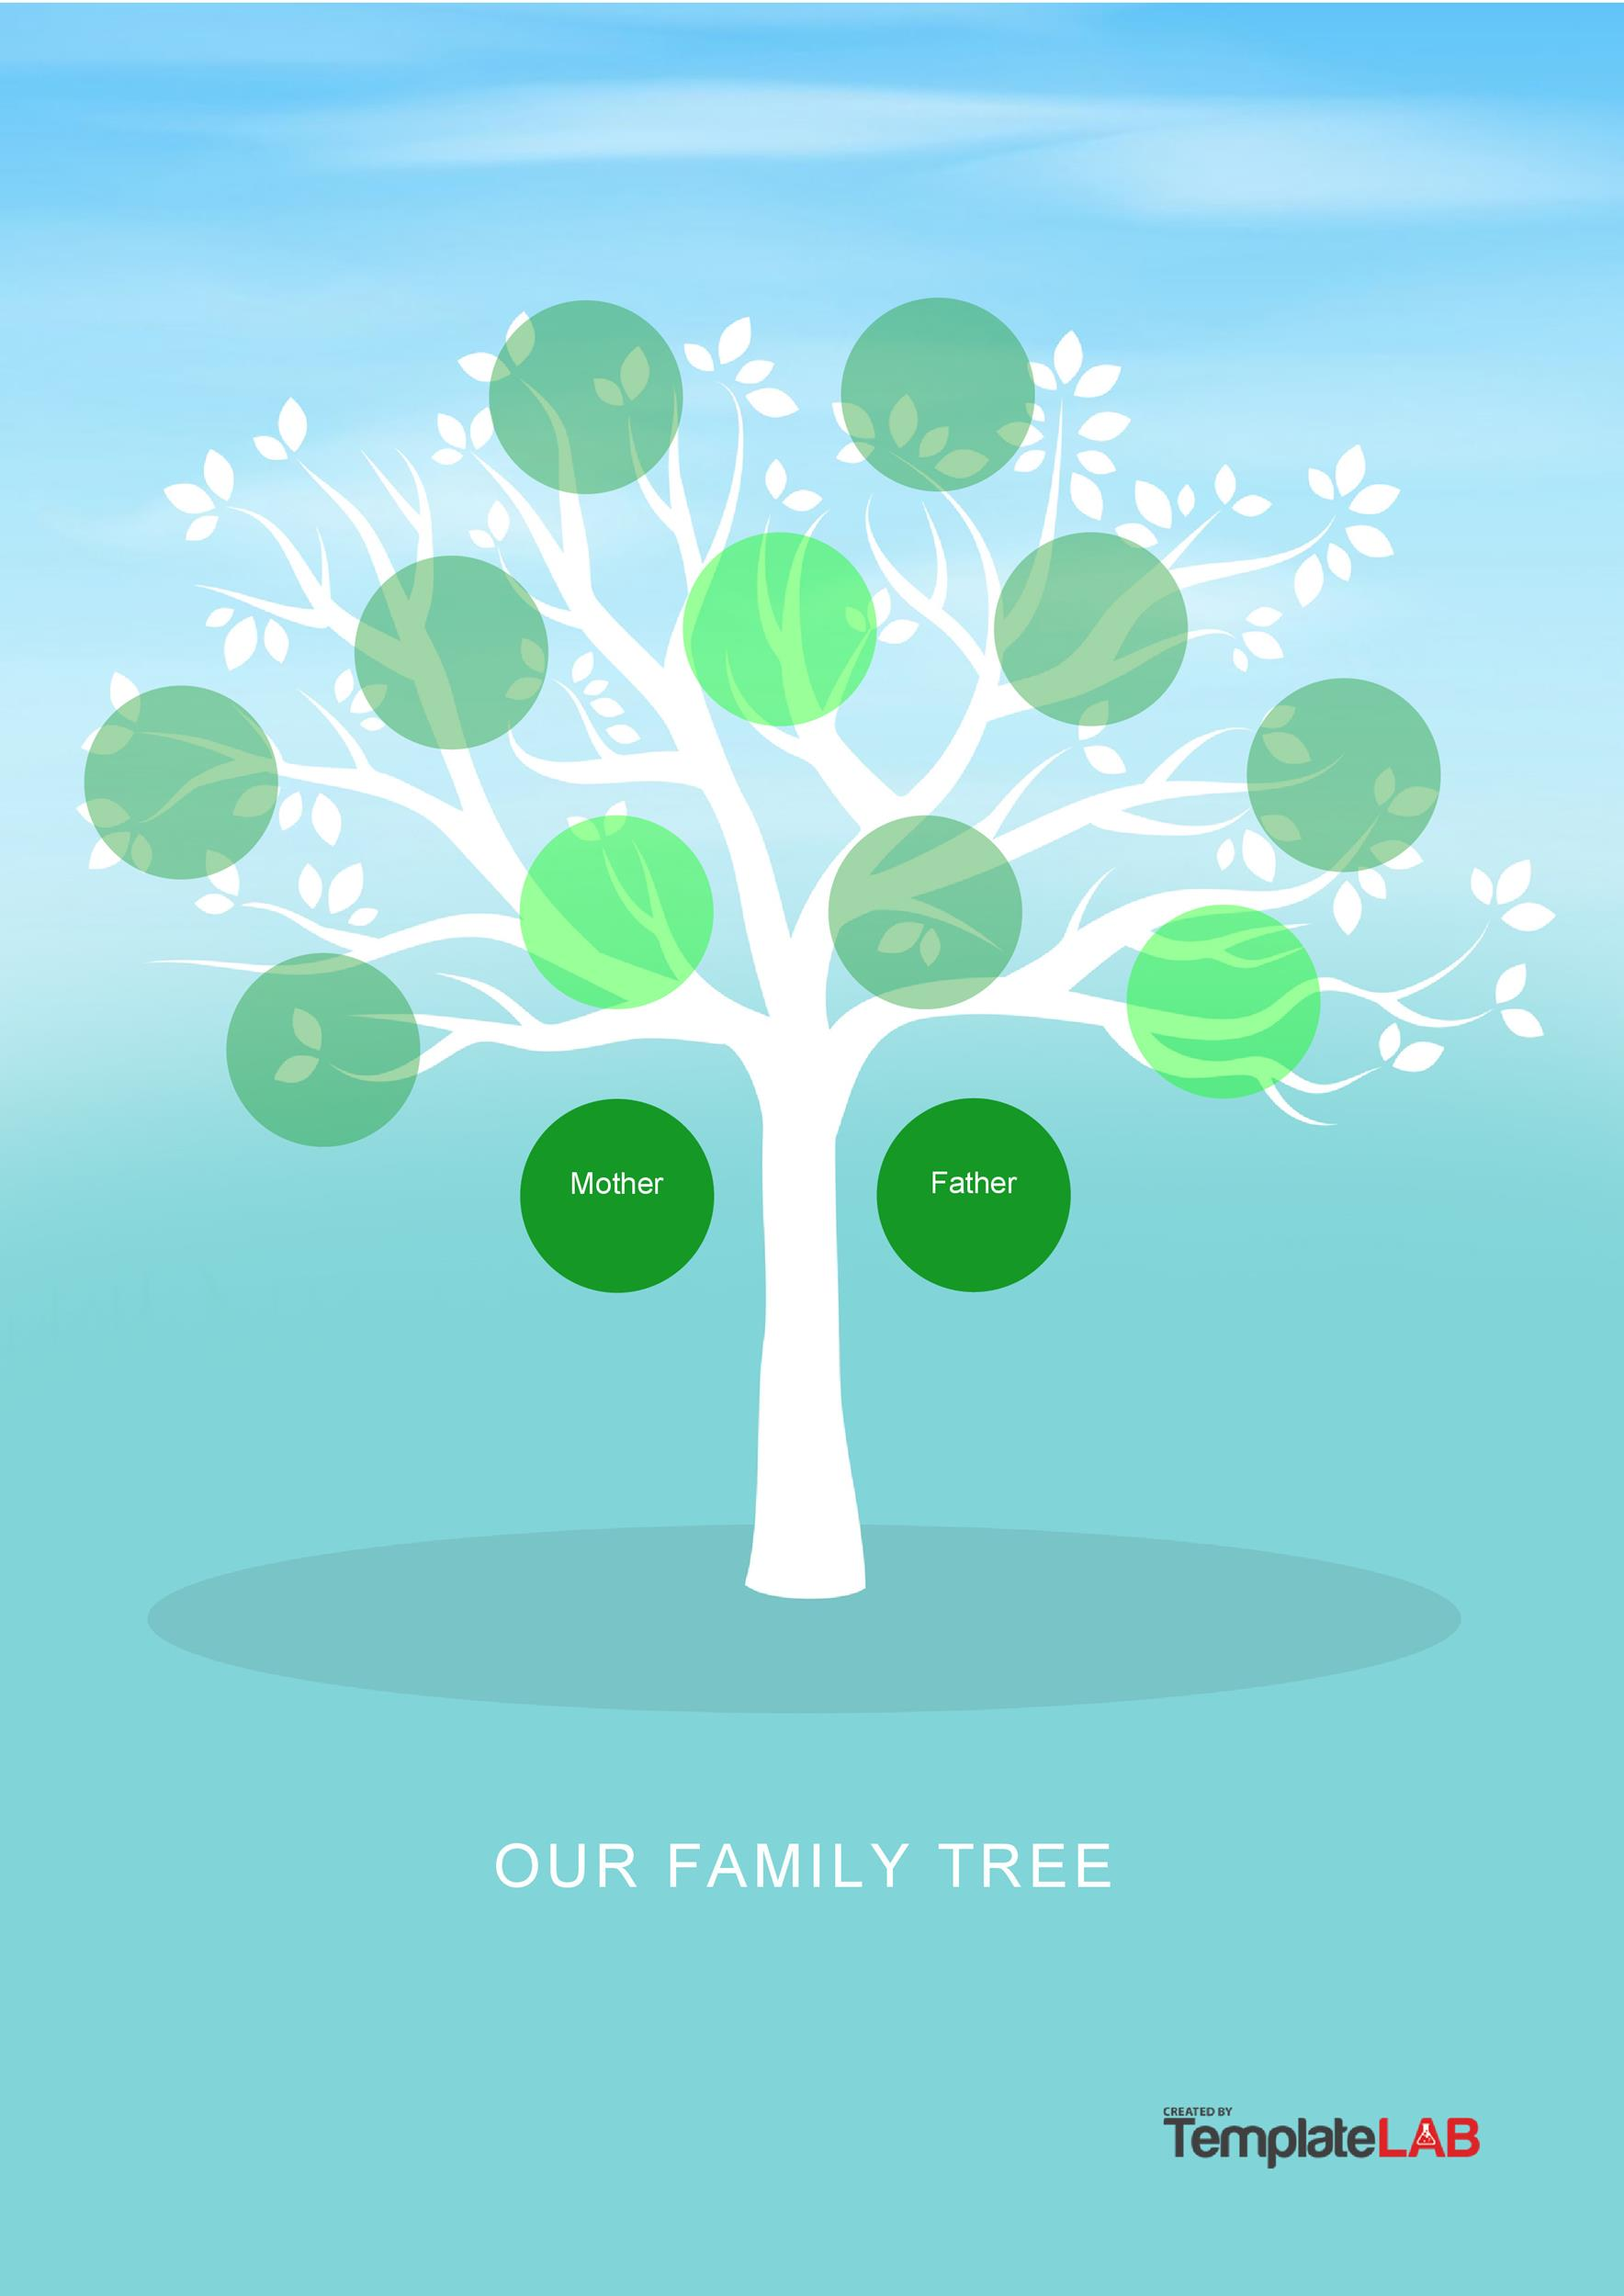 50+ Free Family Tree Templates (Word, Excel, PDF) ᐅ